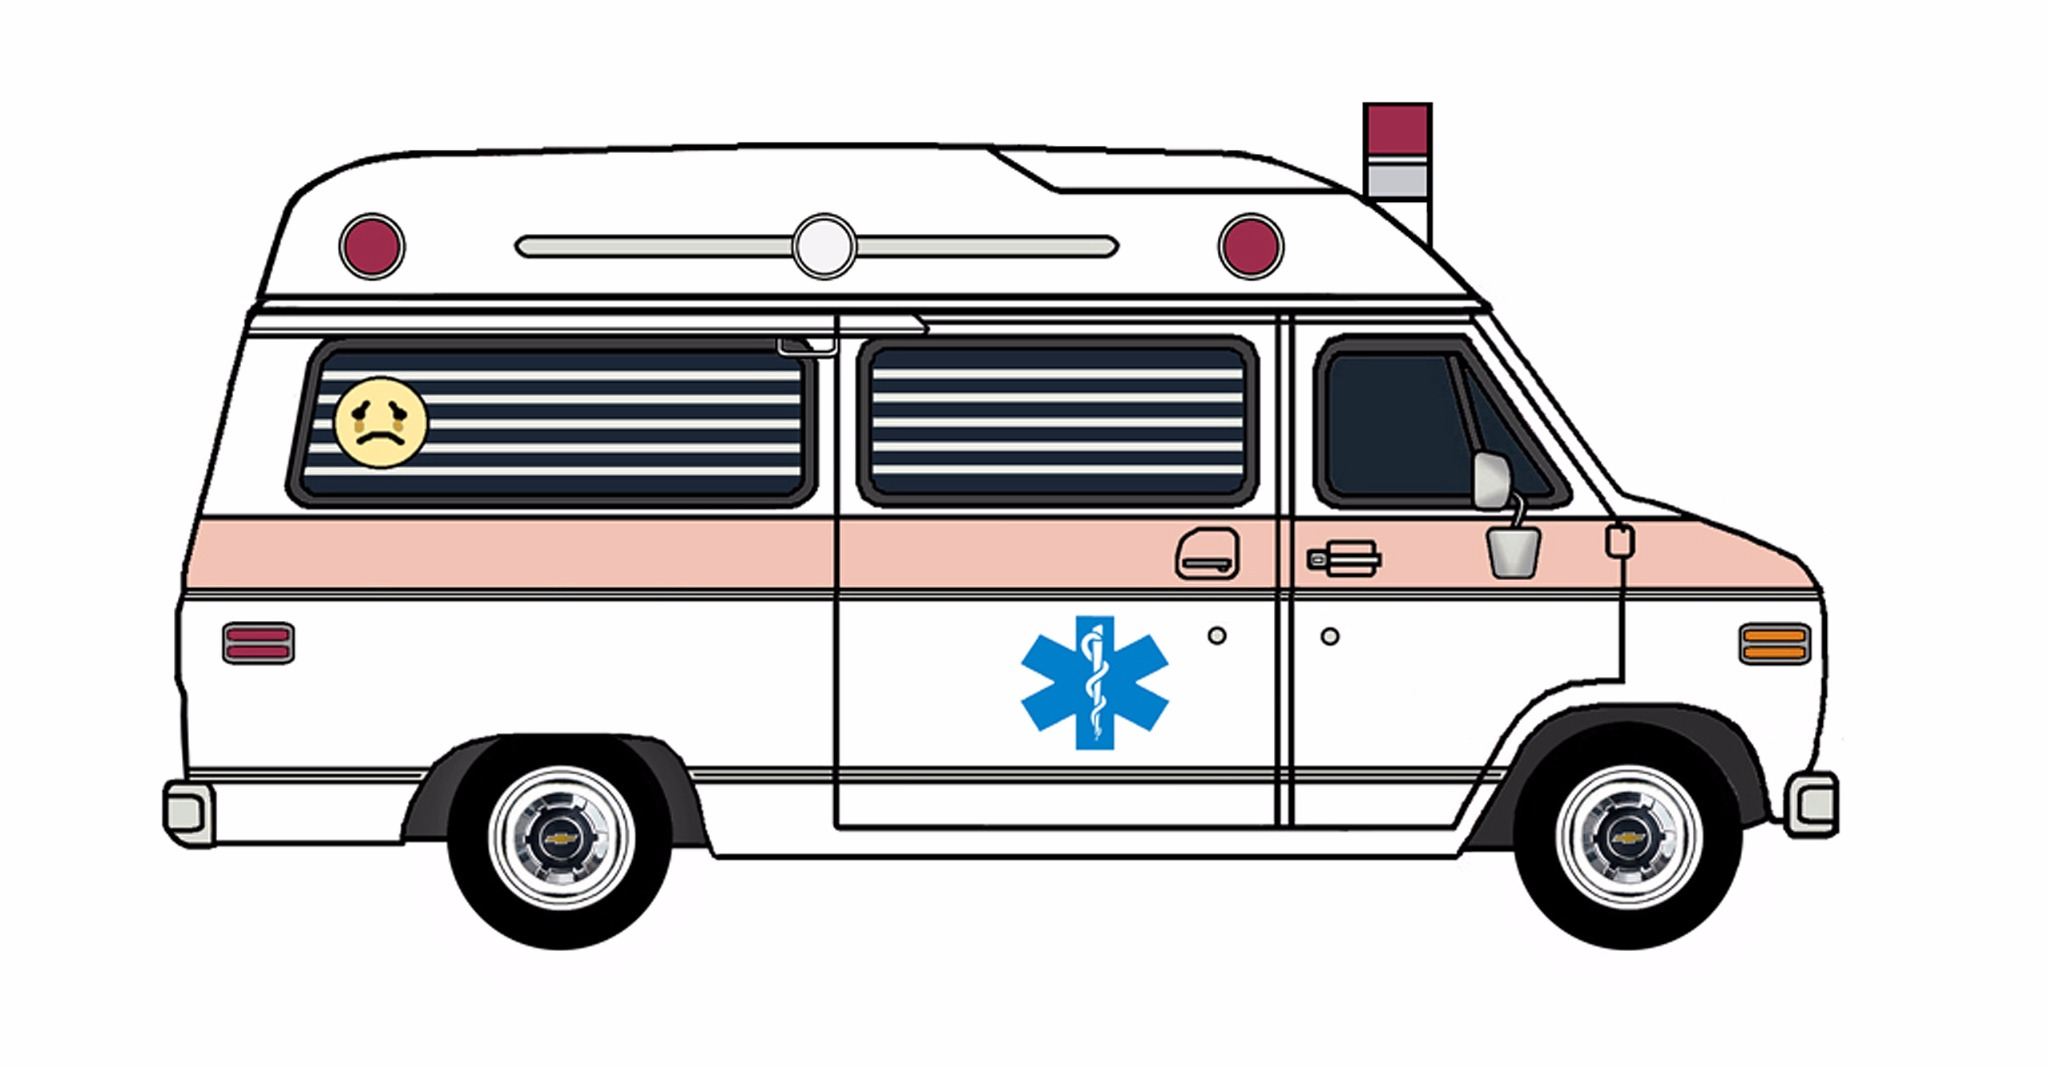 1977 Chevy G20 Ambulance WHITE & ROSE PINK